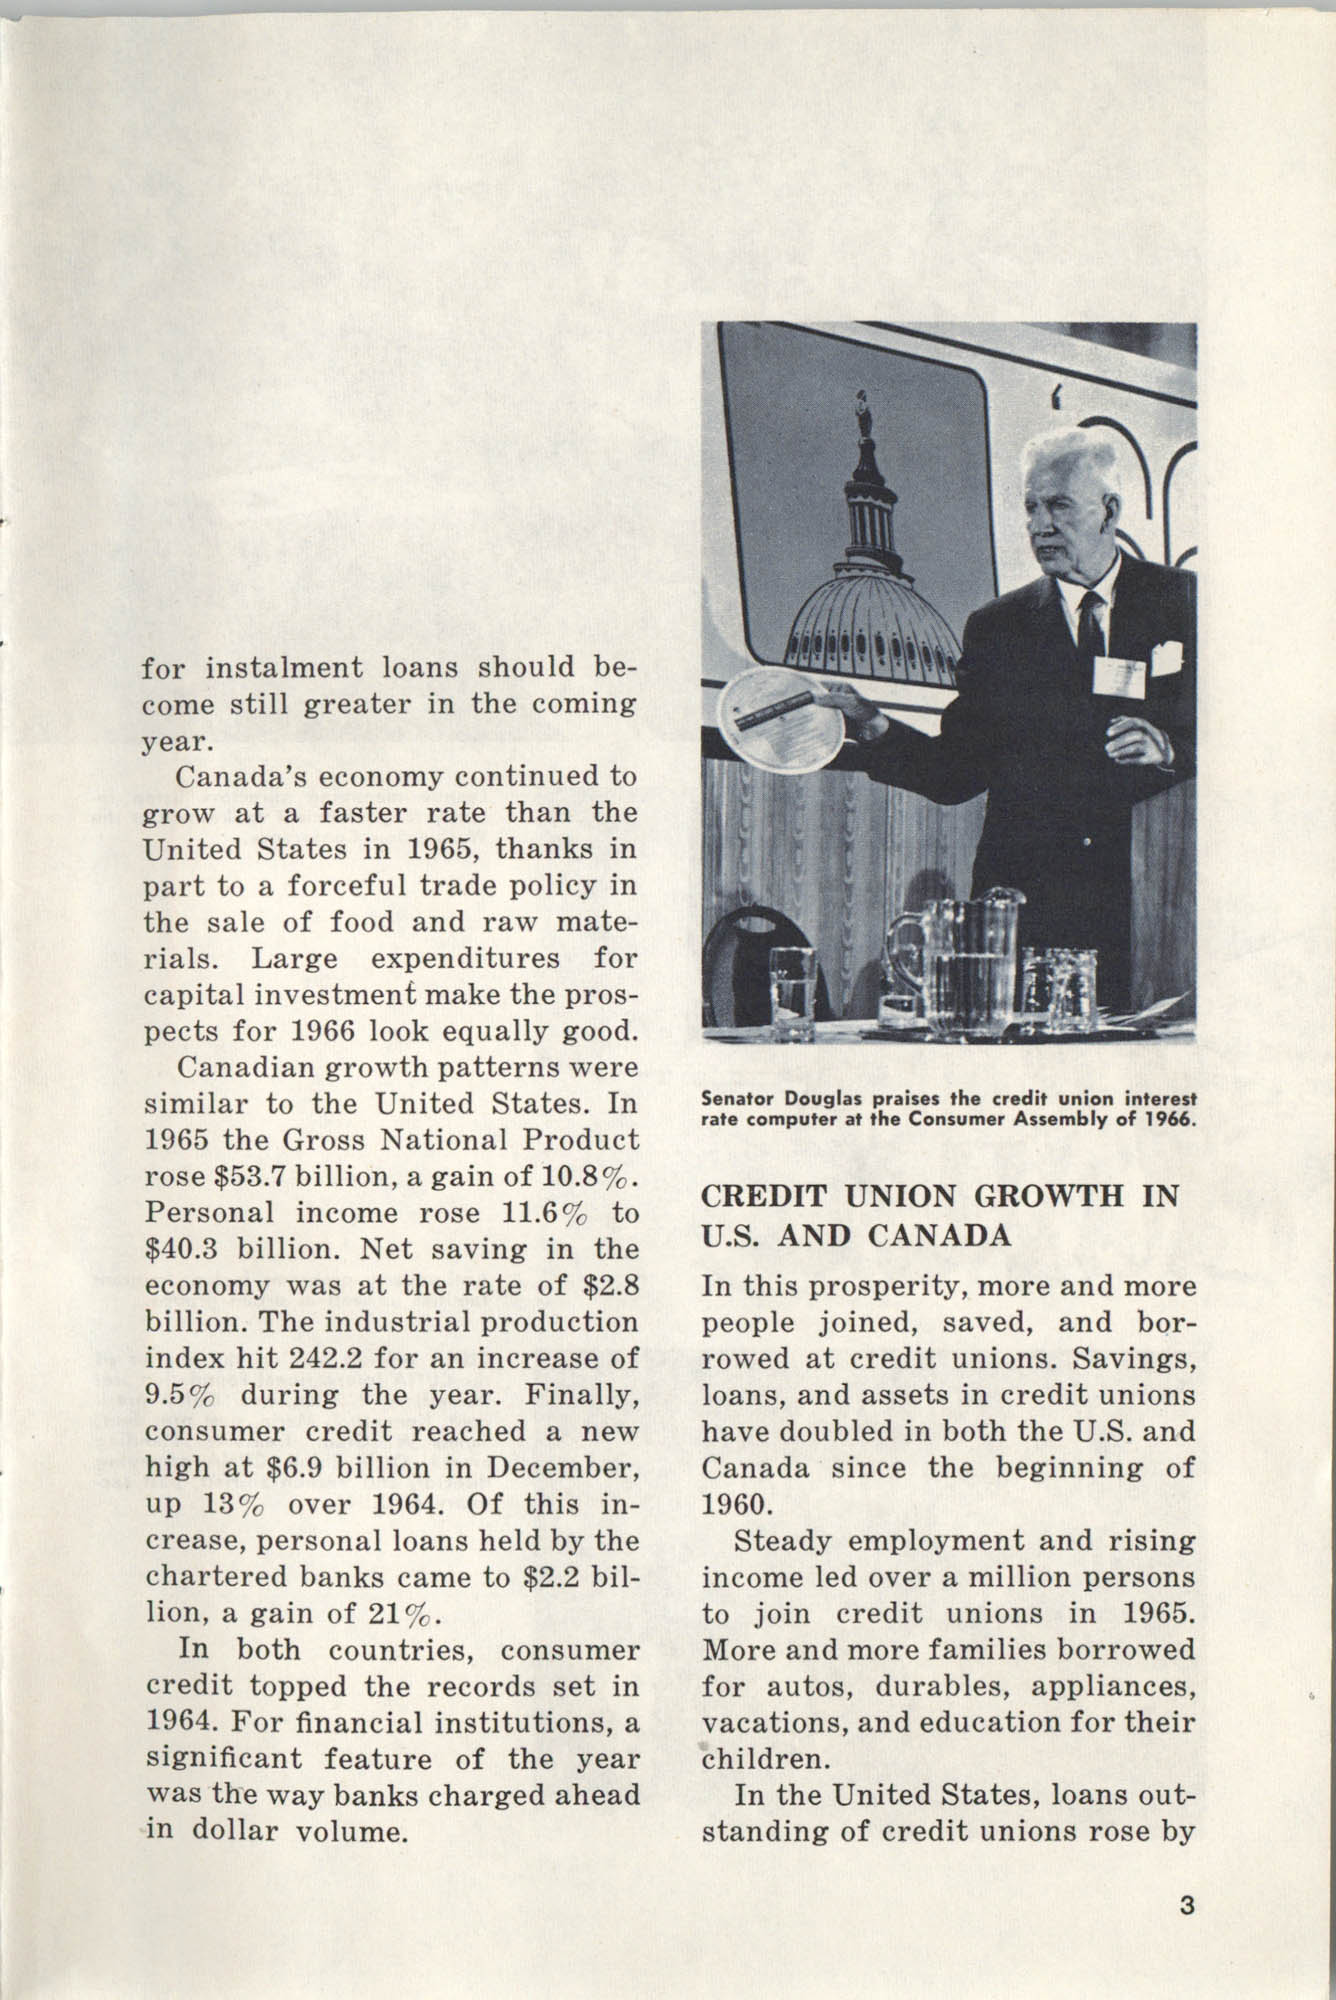 International Credit Union Yearbook, Page 3